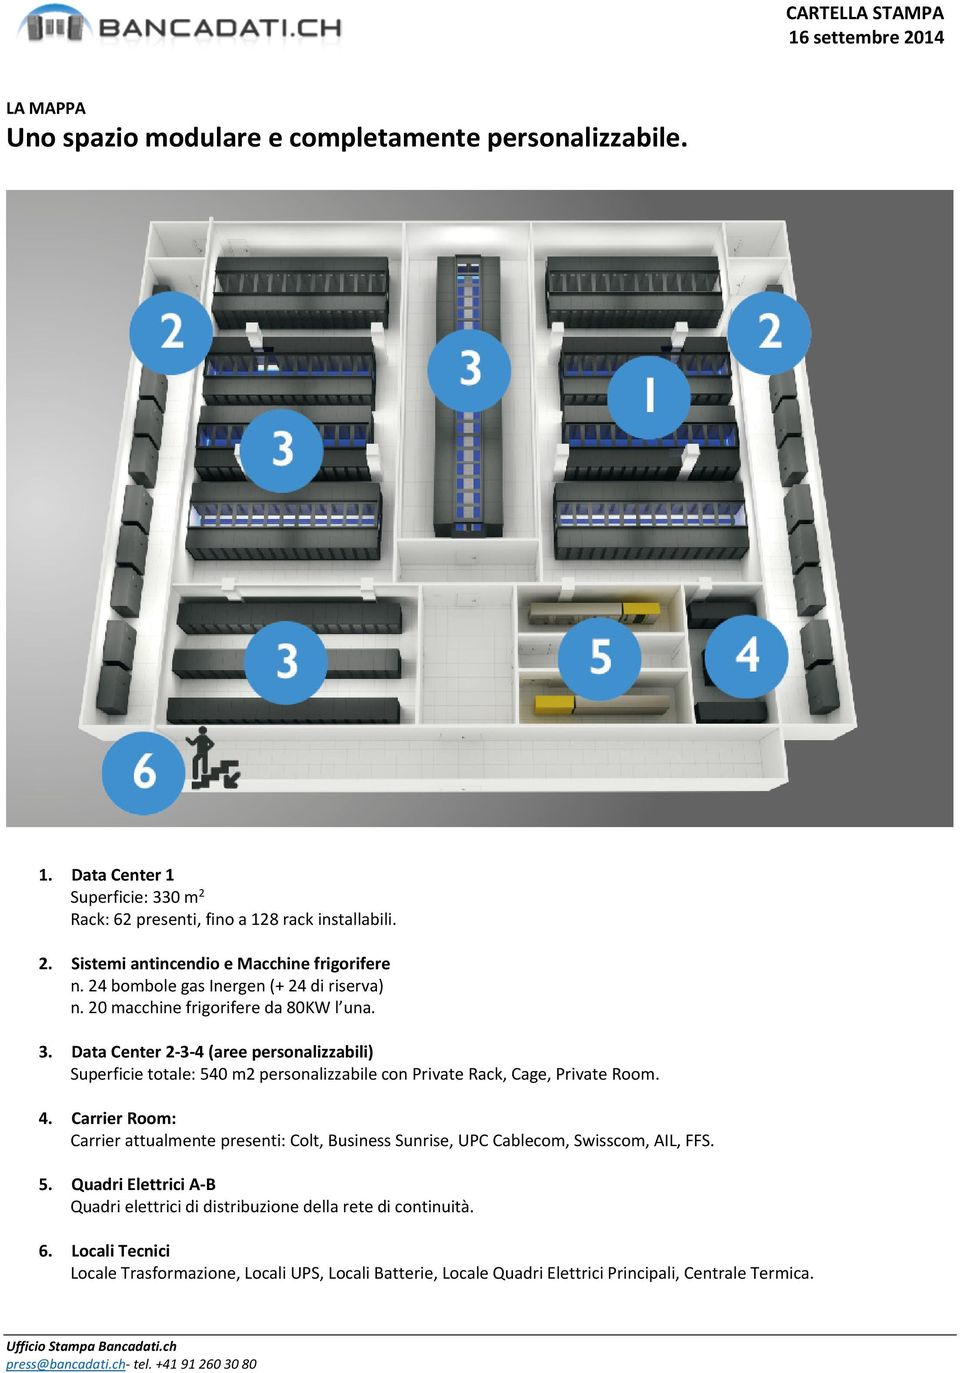 Data Center 2-3-4 (aree personalizzabili) Superficie totale: 540 m2 personalizzabile con Private Rack, Cage, Private Room. 4.